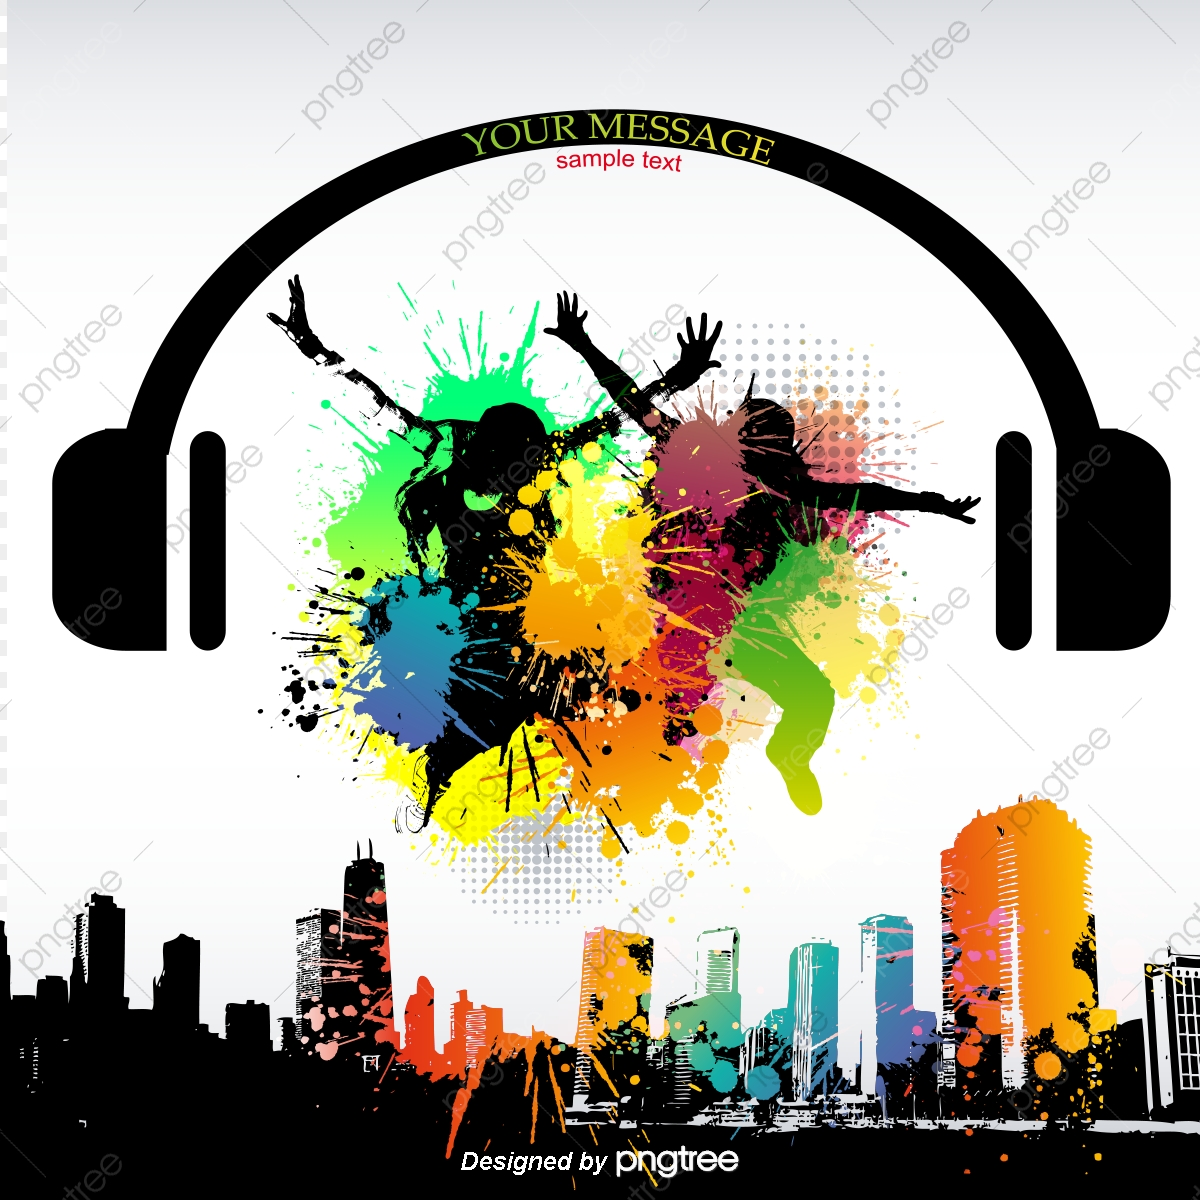 Music Background Png Vector Psd And Clipart With Transparent Background For Free Download Pngtree